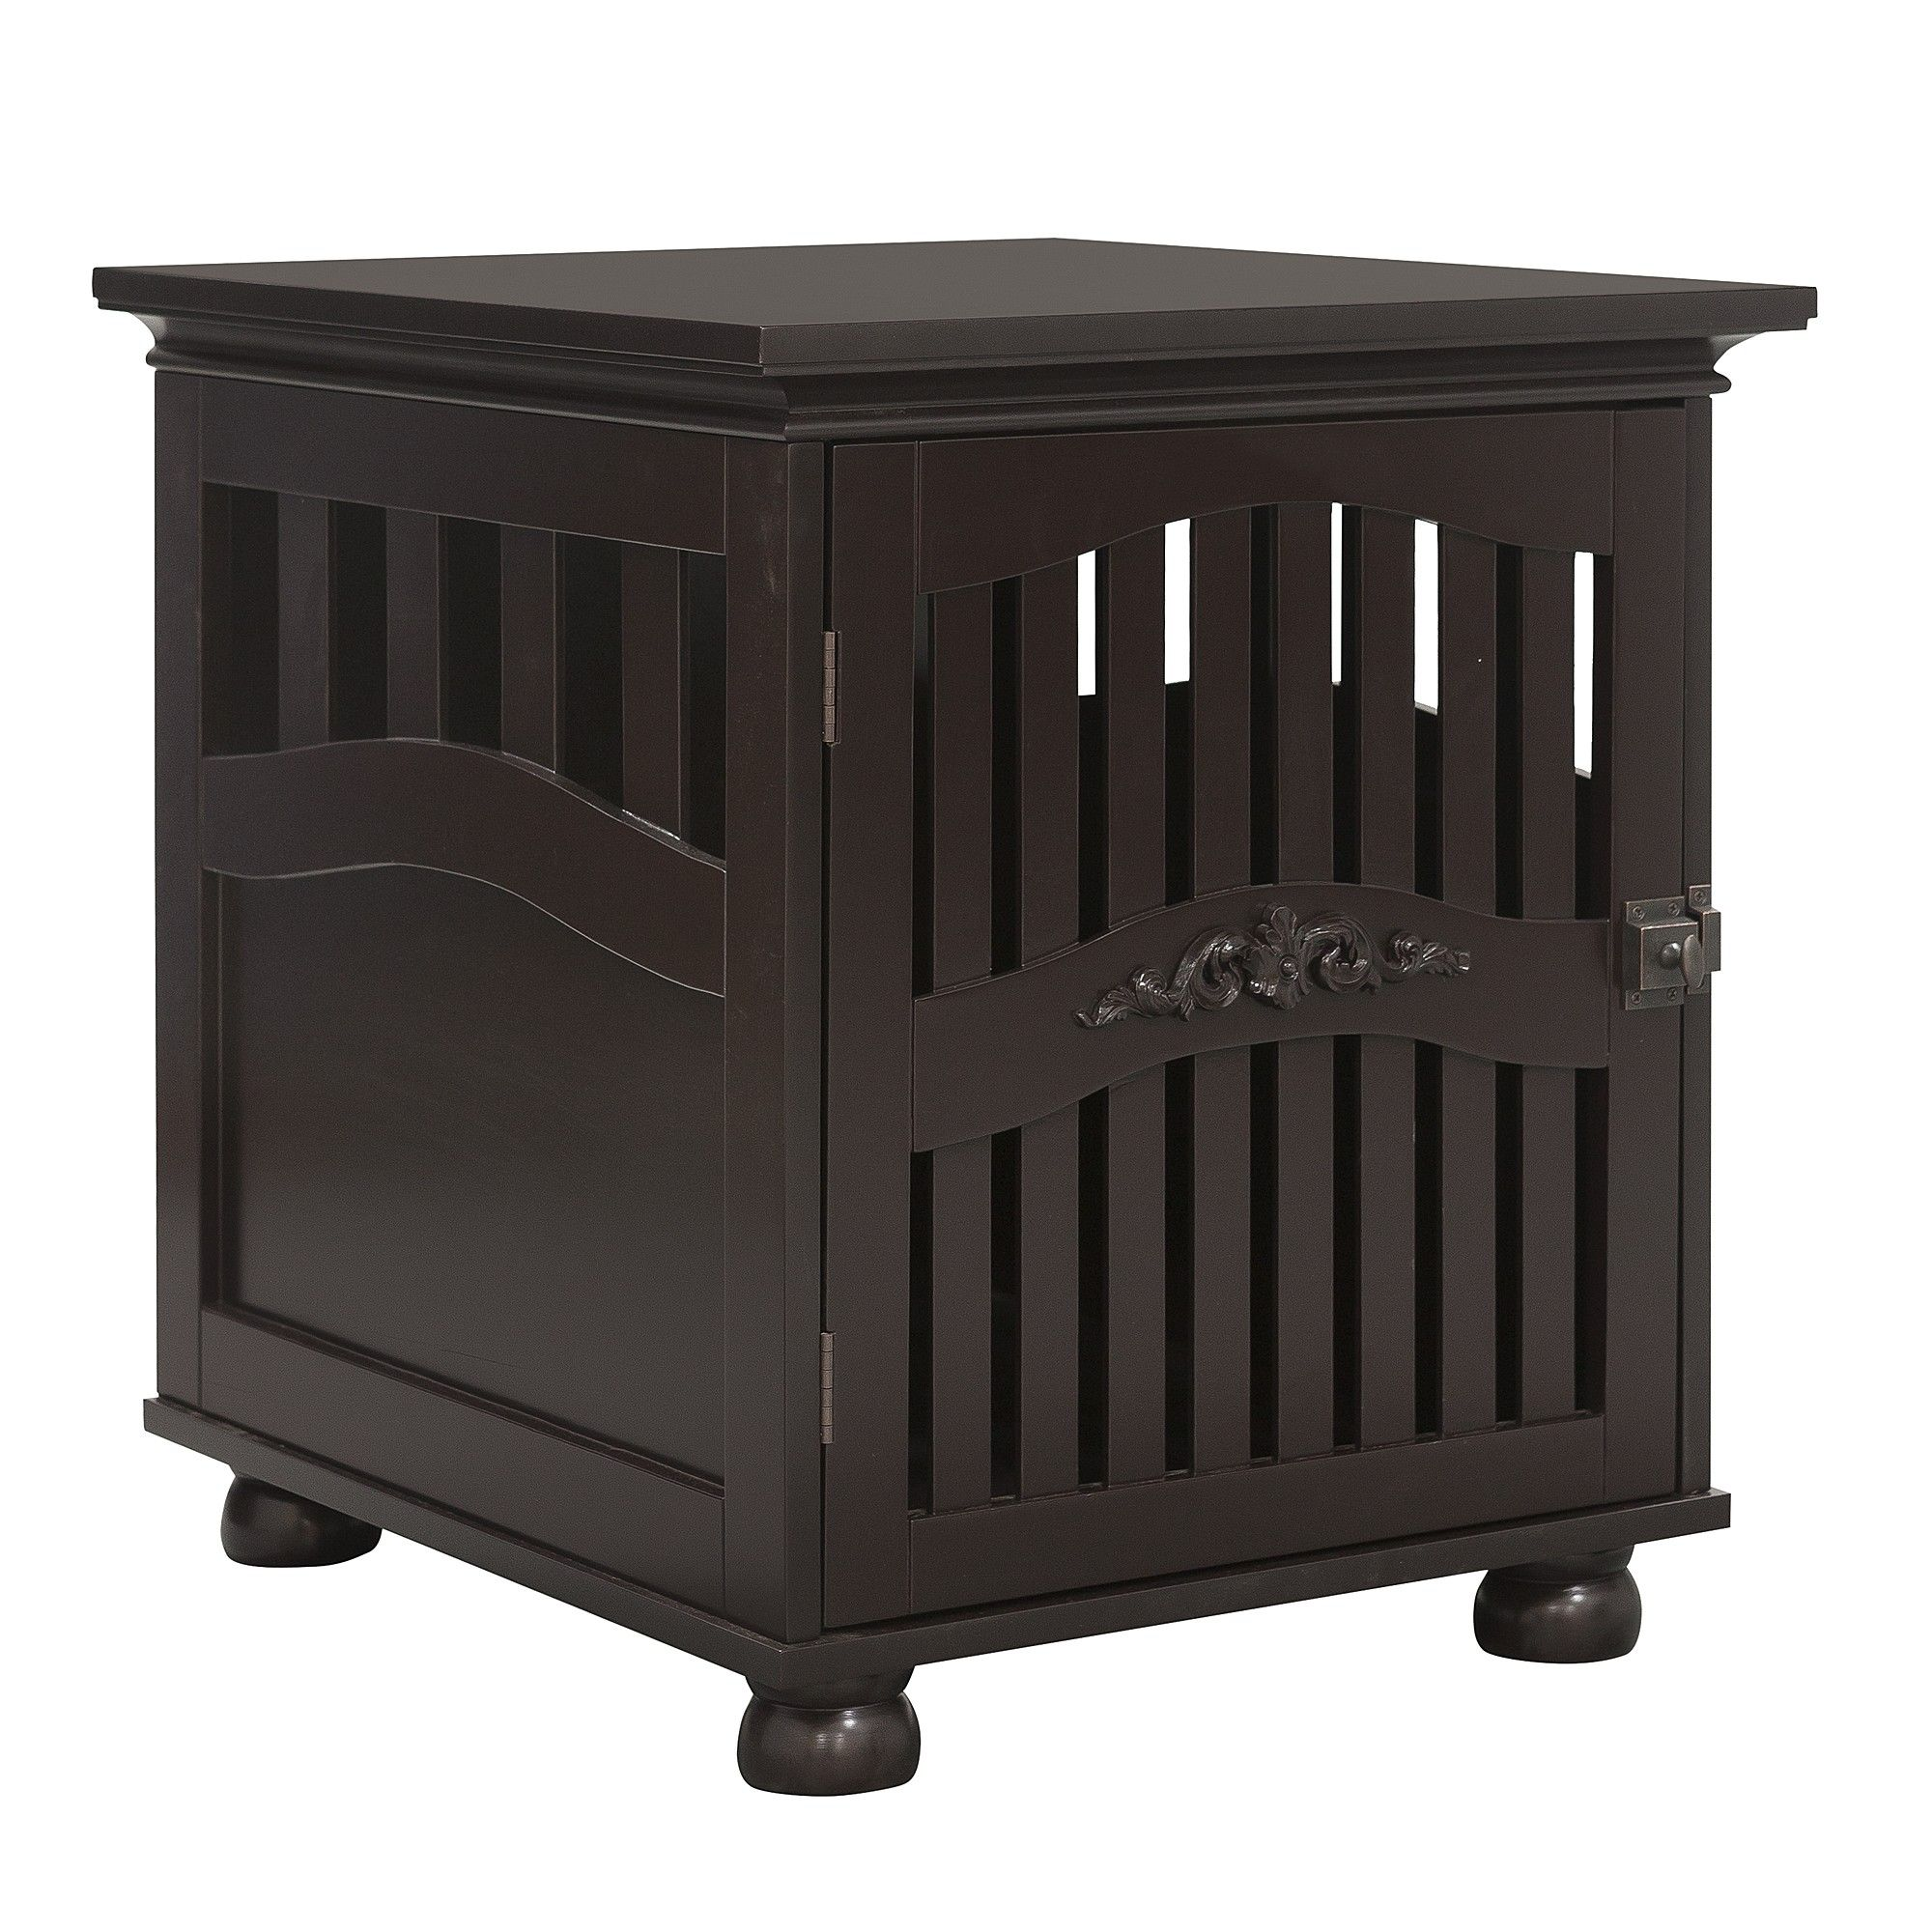 Ethan Pets Kirkland Buddy Residence Pet Crate End Table